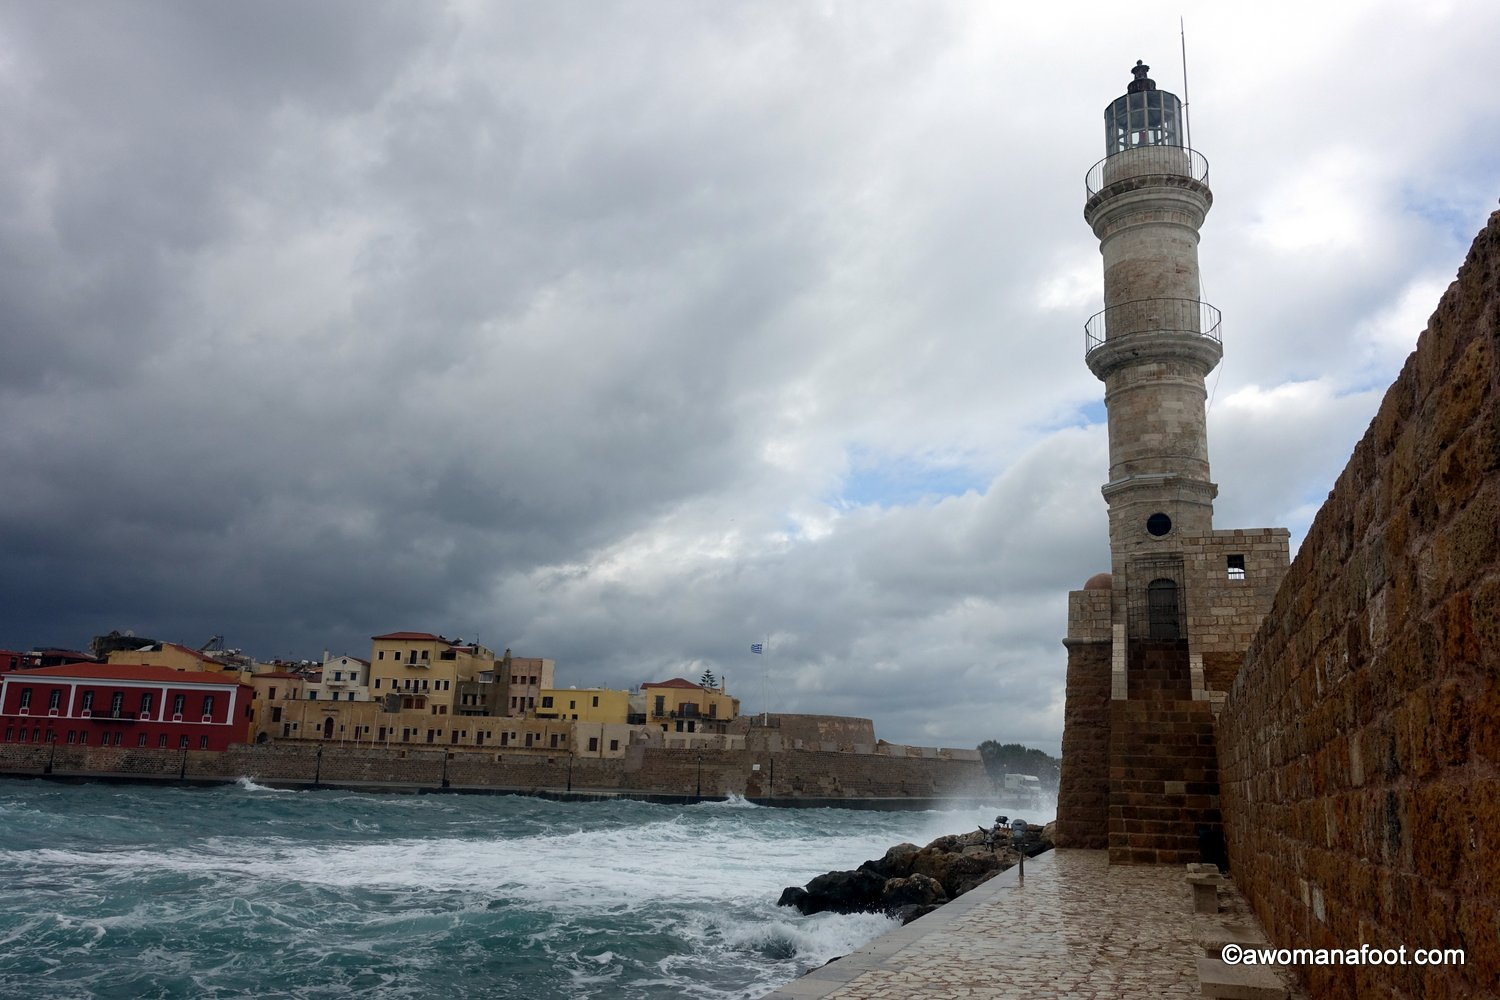 Chania storm winter port Greece Crete lighthouse